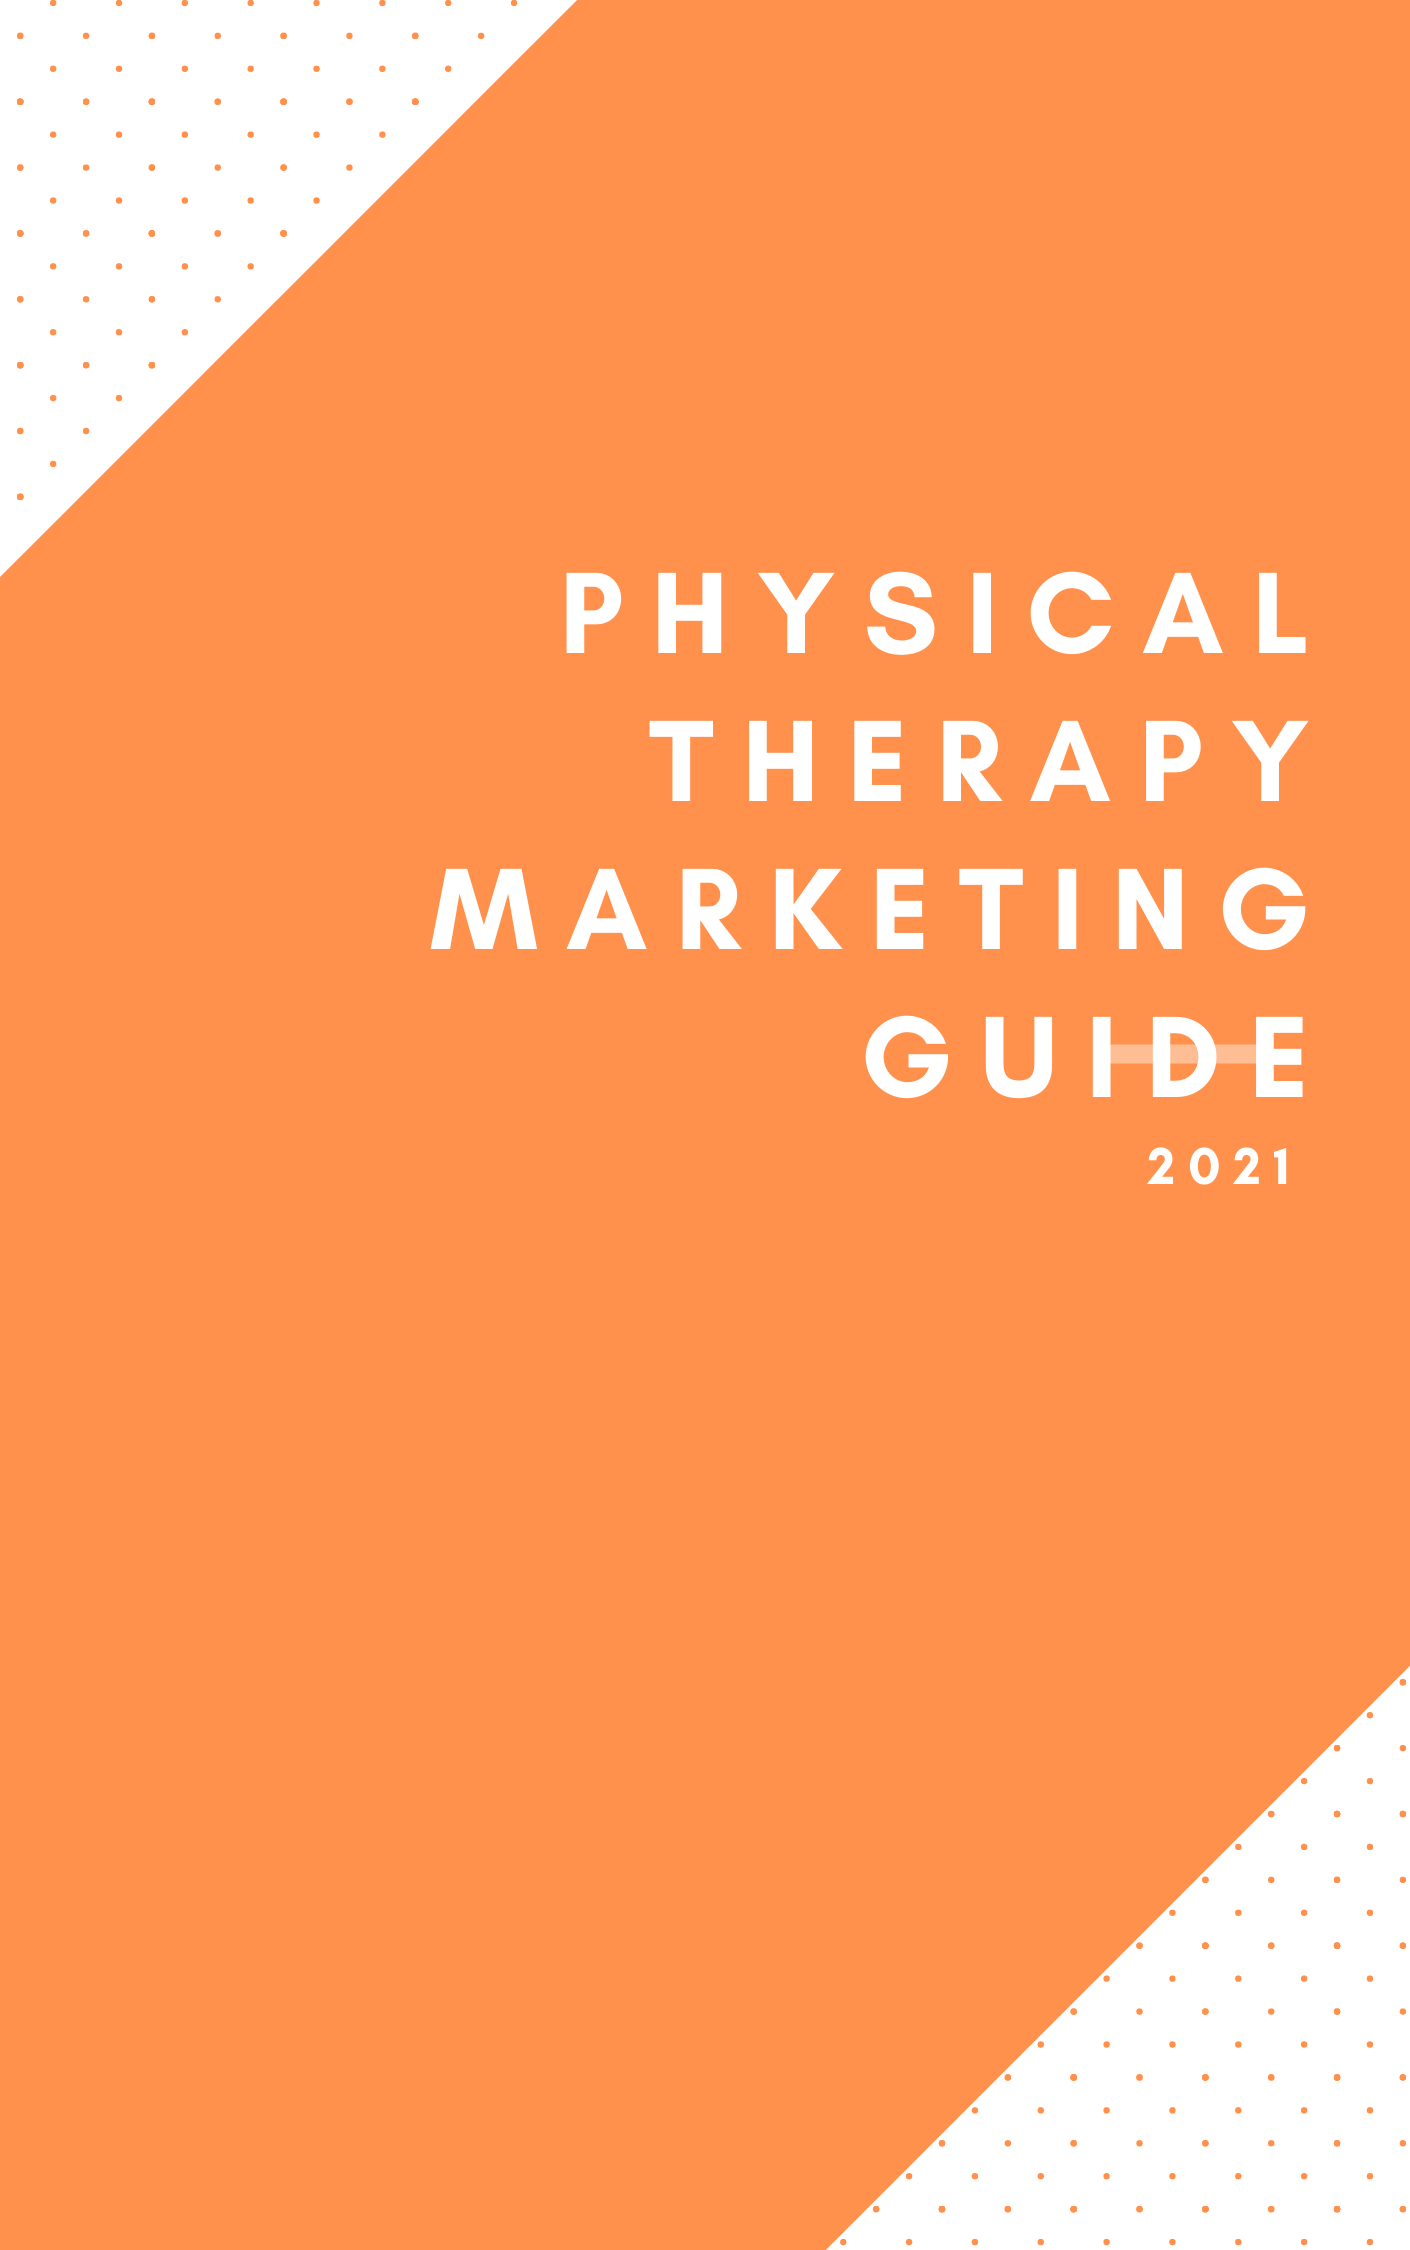 physical therapy marketing guide